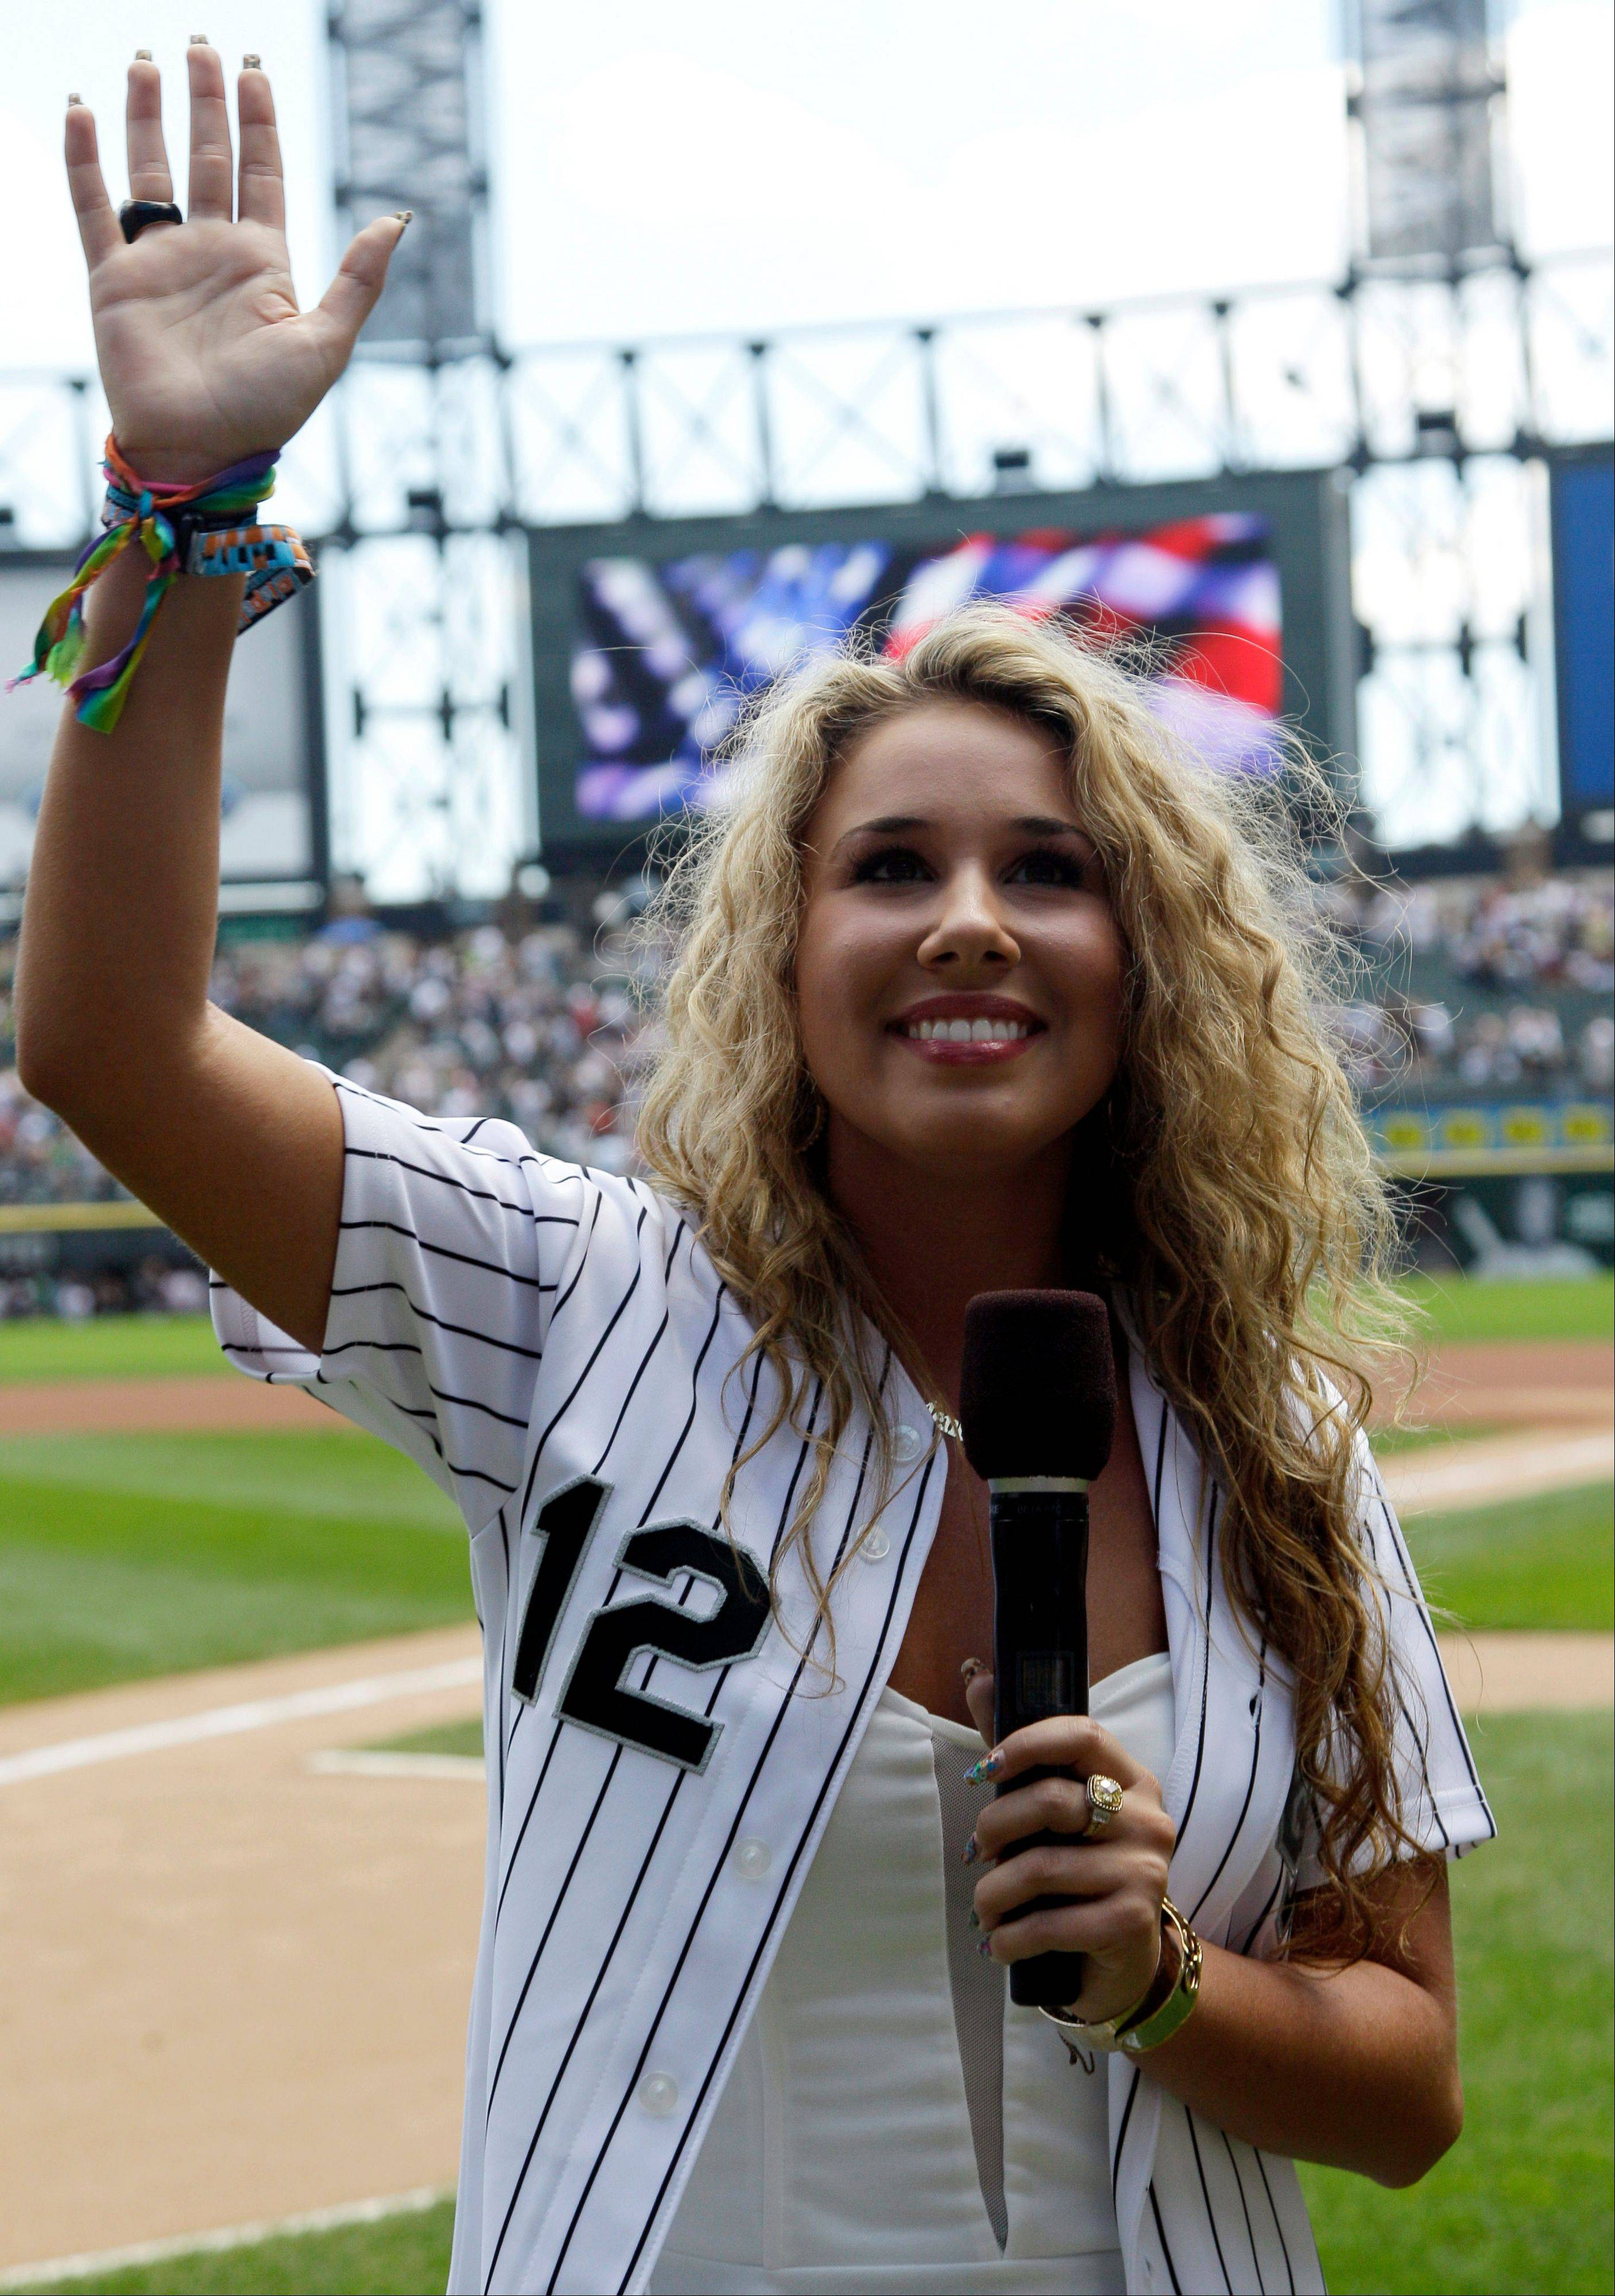 Singer-songwriter and Wheeling native Haley Reinhart waves to fans before singing the national anthem Sunday at U.S. Cellular Field.